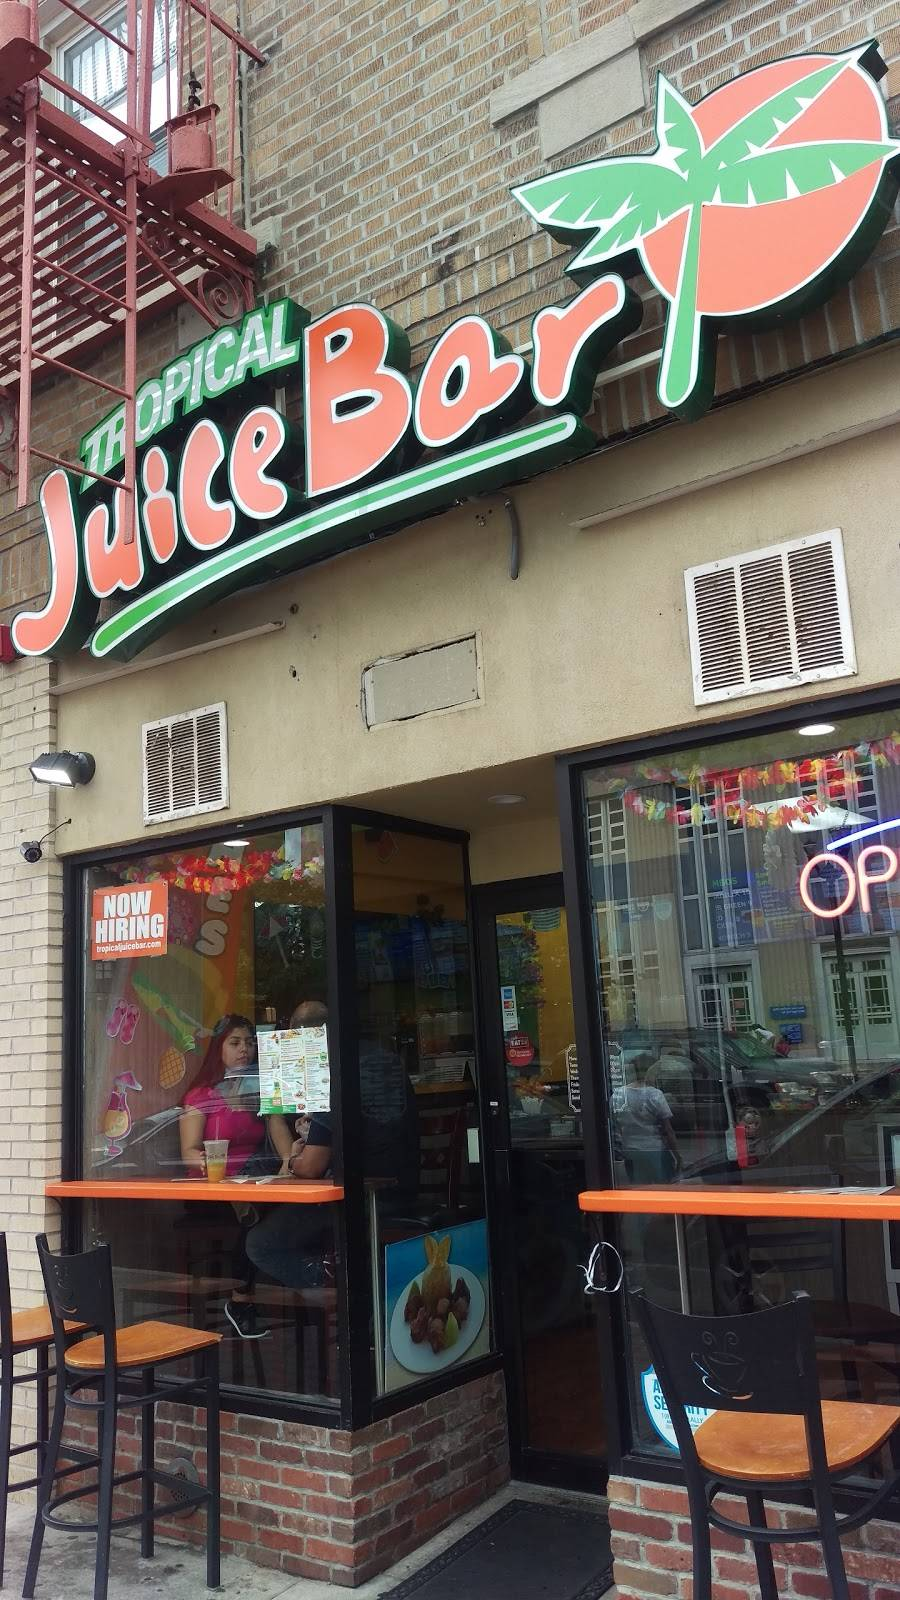 Tropical Juice Bar | restaurant | 5406 Bergenline Ave, West New York, NJ 07093, USA | 2012234400 OR +1 201-223-4400